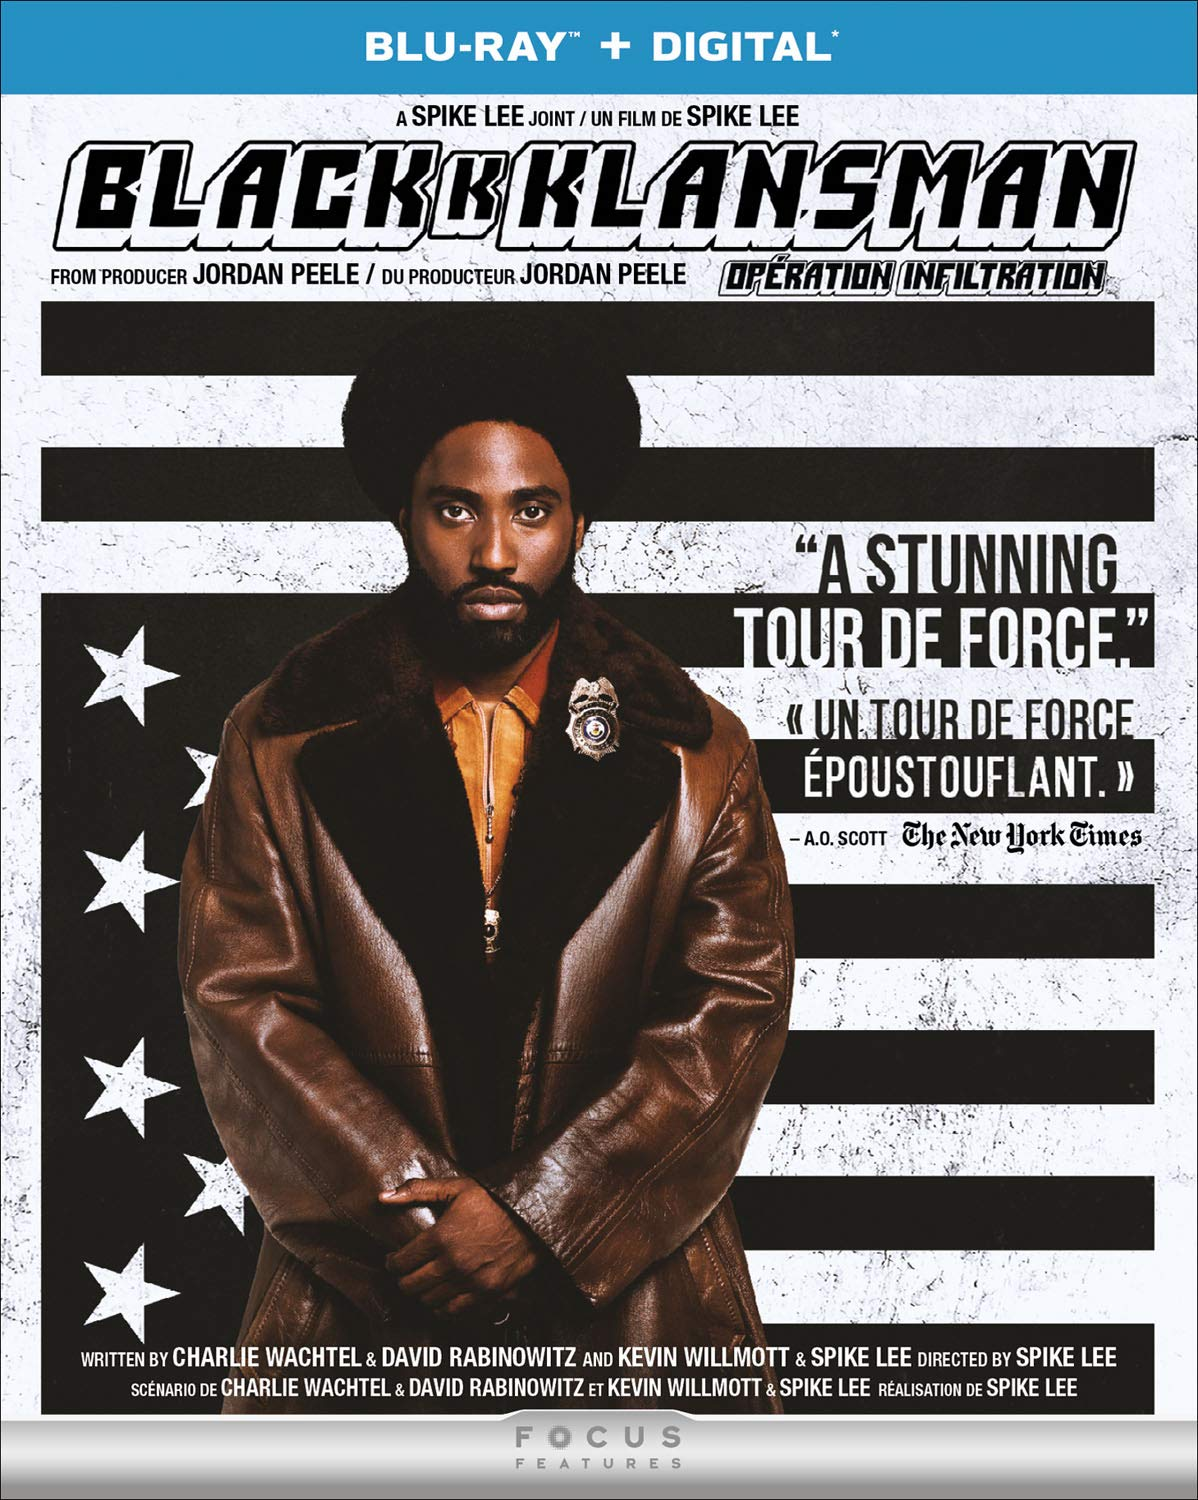 BlacKkKlansman [Blu-ray + Digital] (Bilingual) John David Washington Adam Driver Laura Harrier Topher Grace